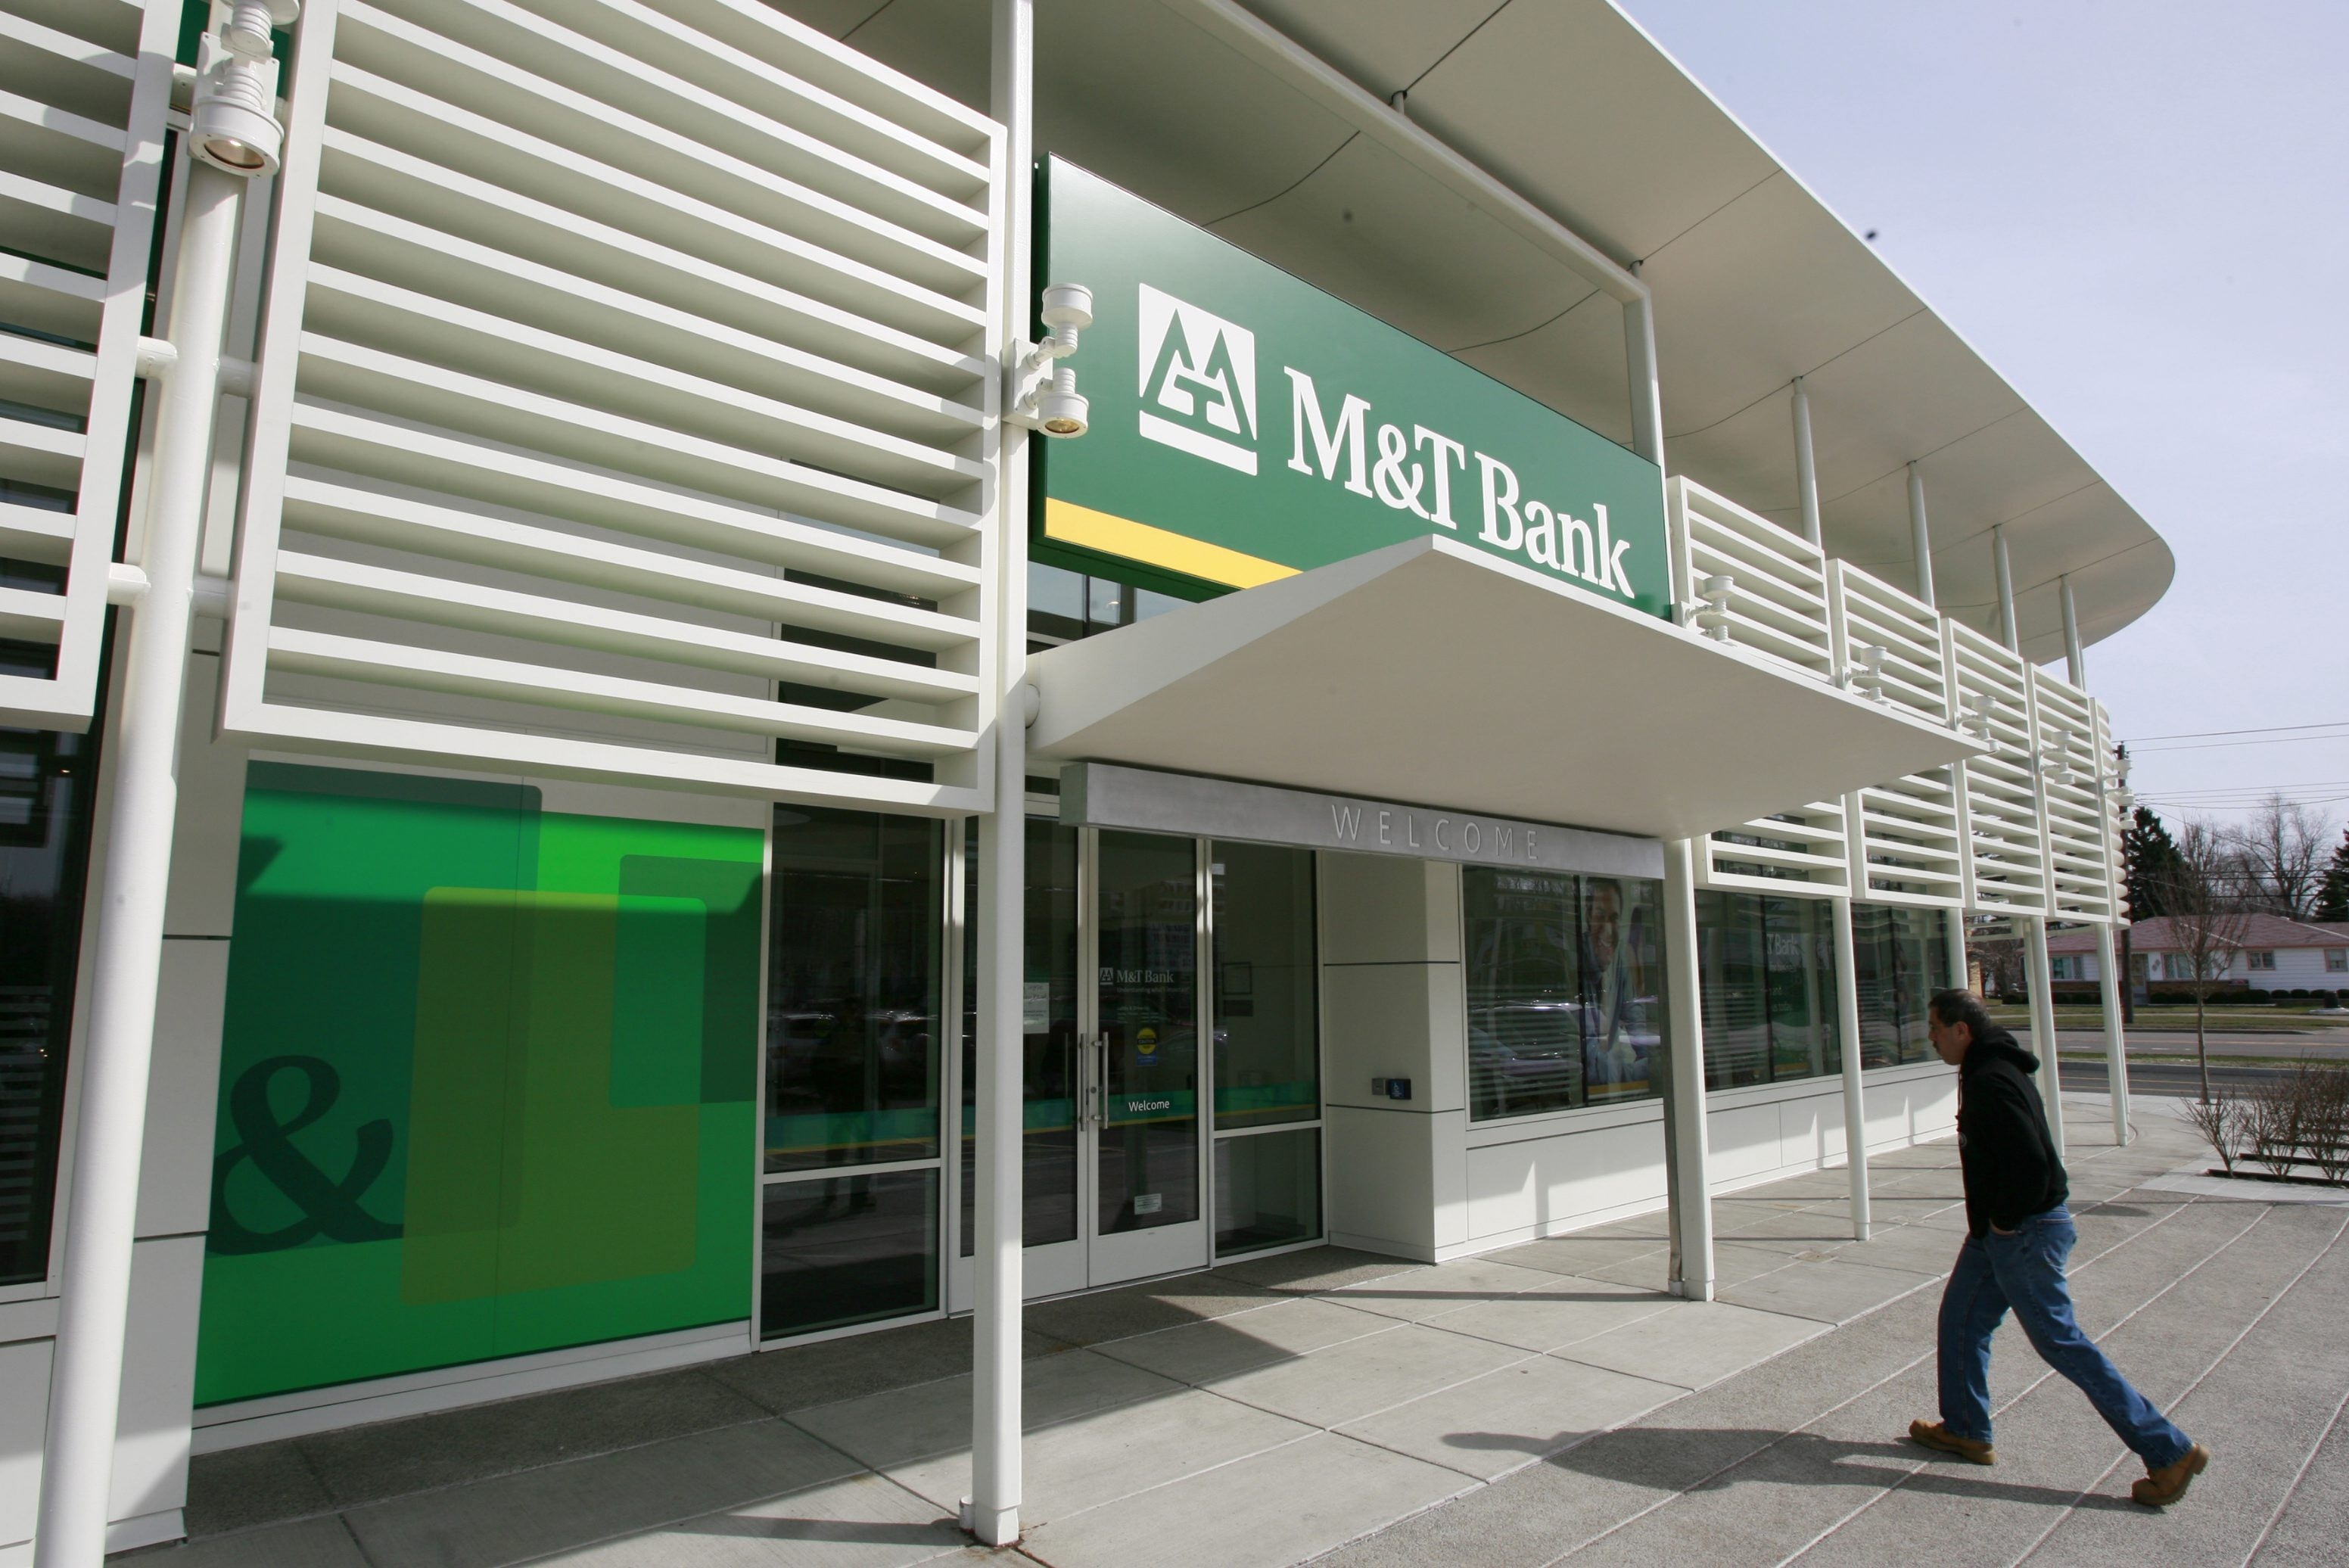 M&T Bank also continues to benefit from the effect of HSBC's divestiture of its upstate retail network.